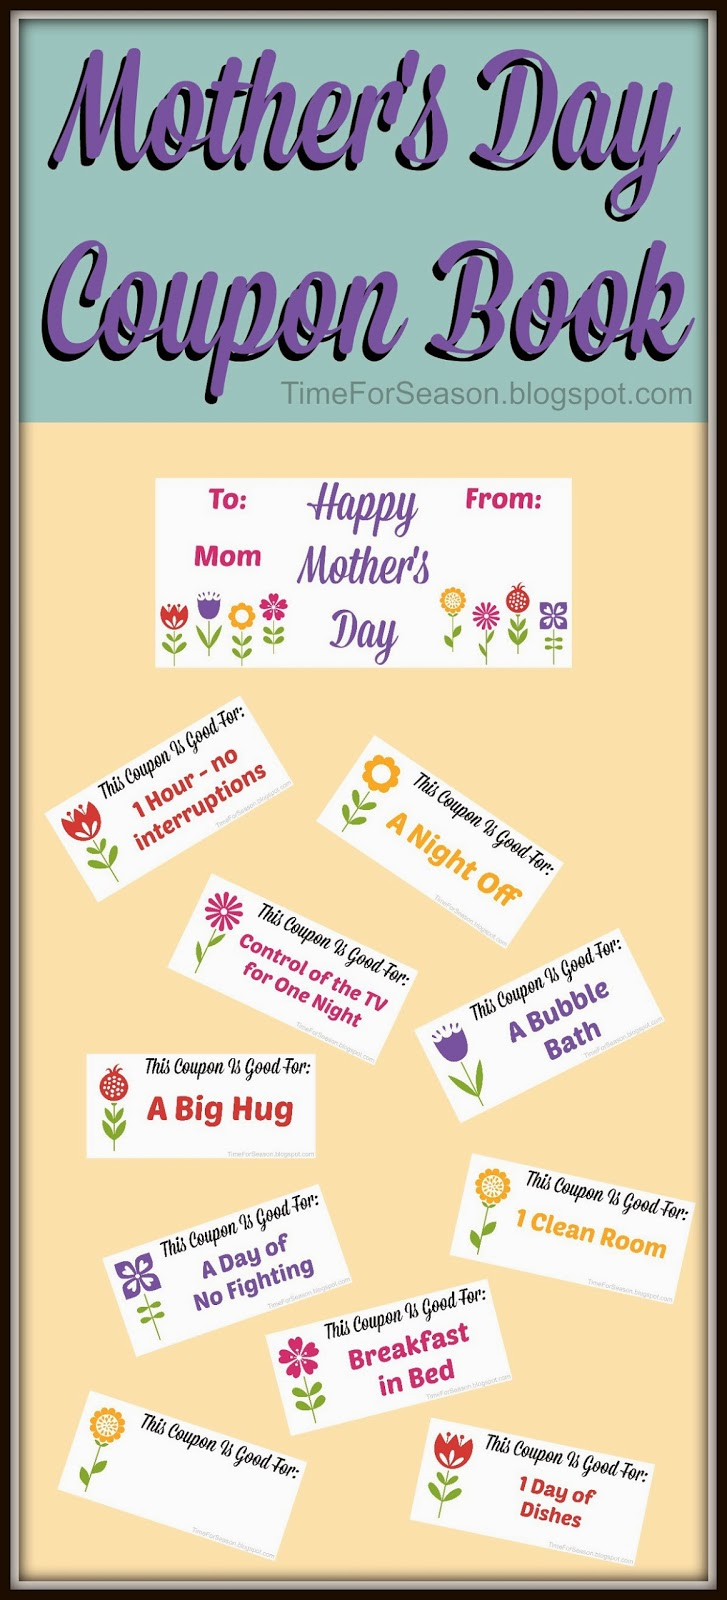 http://timeforseason.blogspot.com/2014/05/mothers-day-coupons-book-free-printable.html